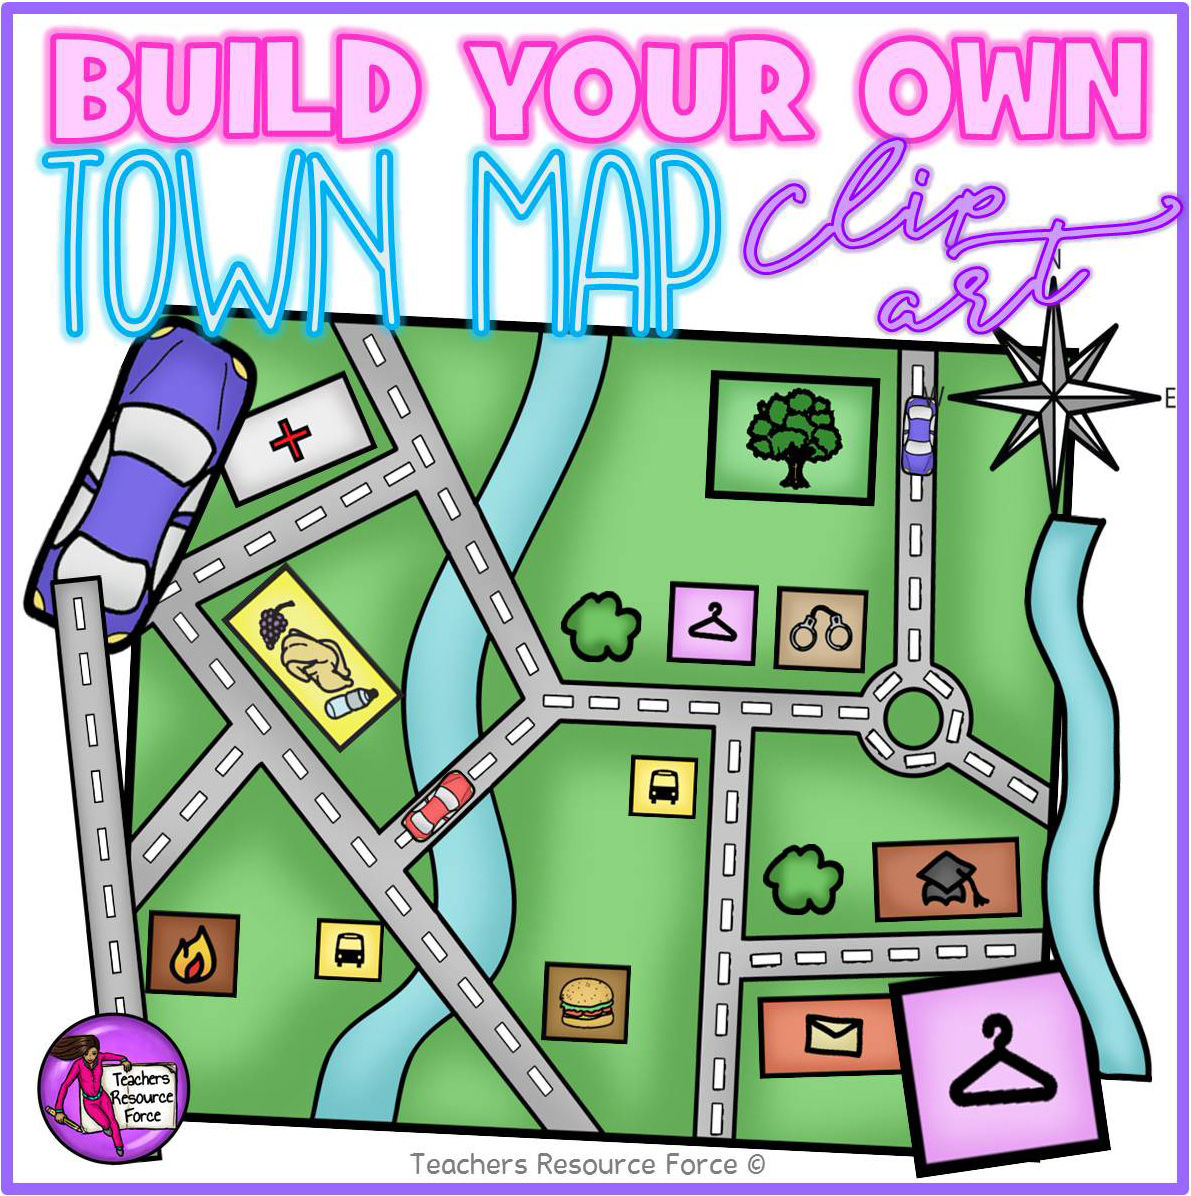 Build your own Town Map Clip Art.